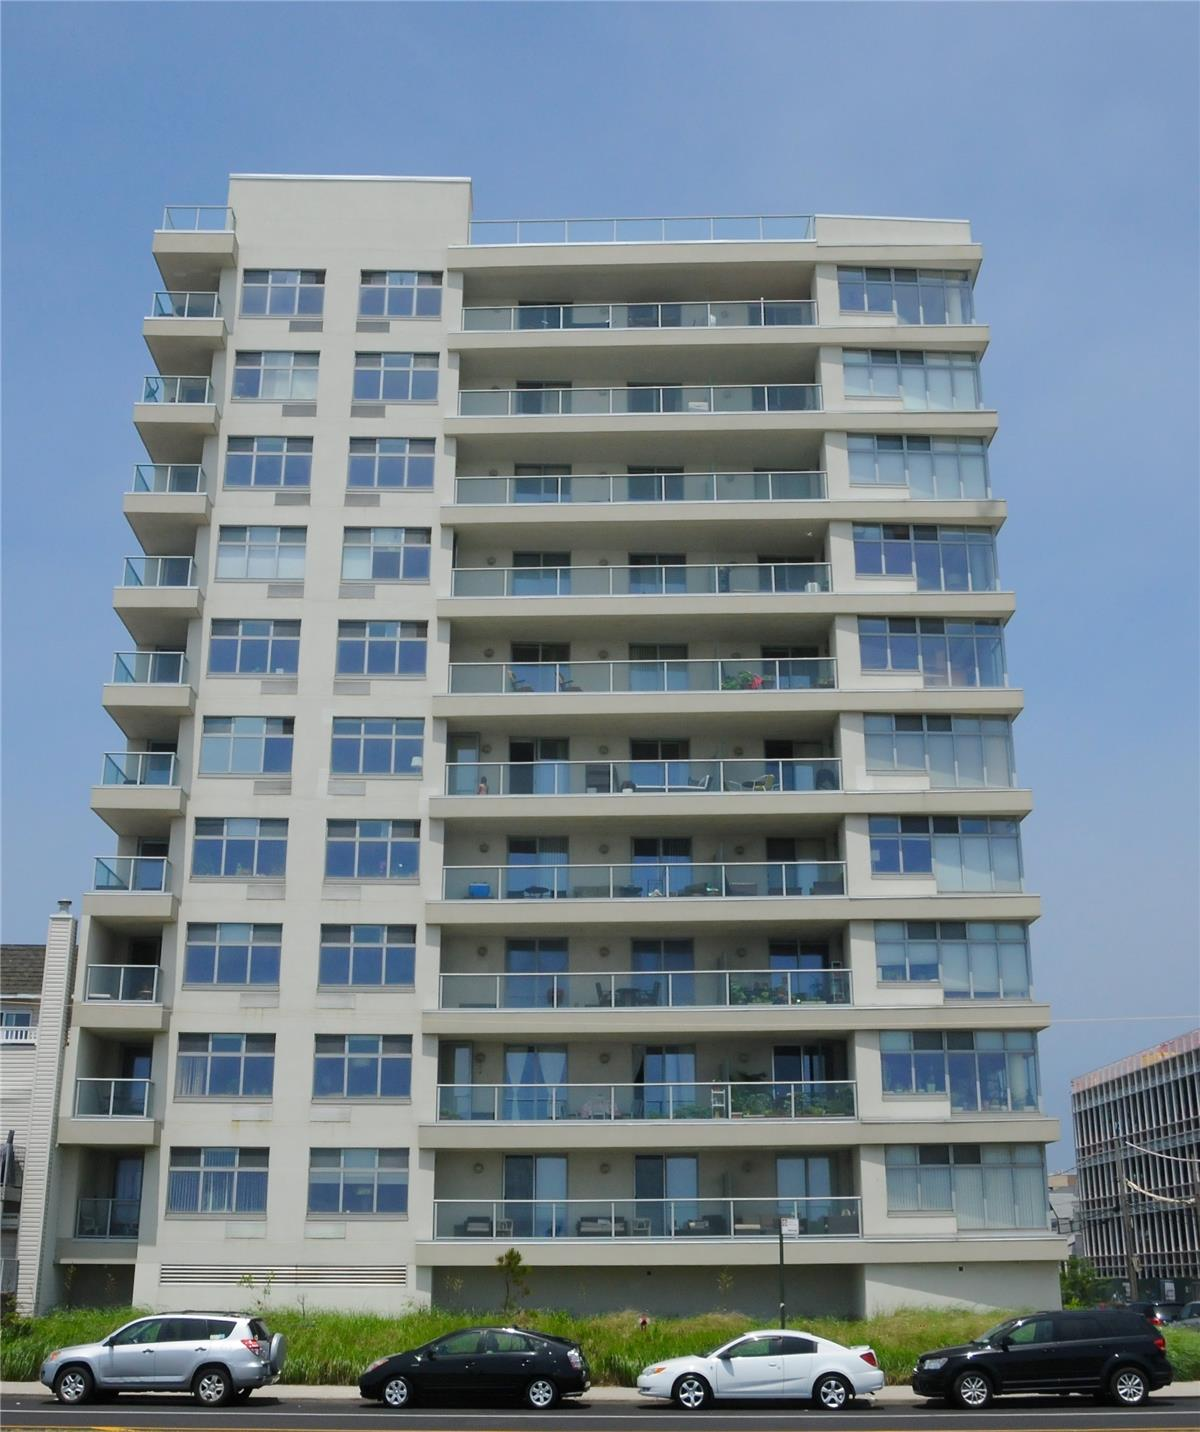 151 Beach 96th St 10-D, Queens, NY 11693